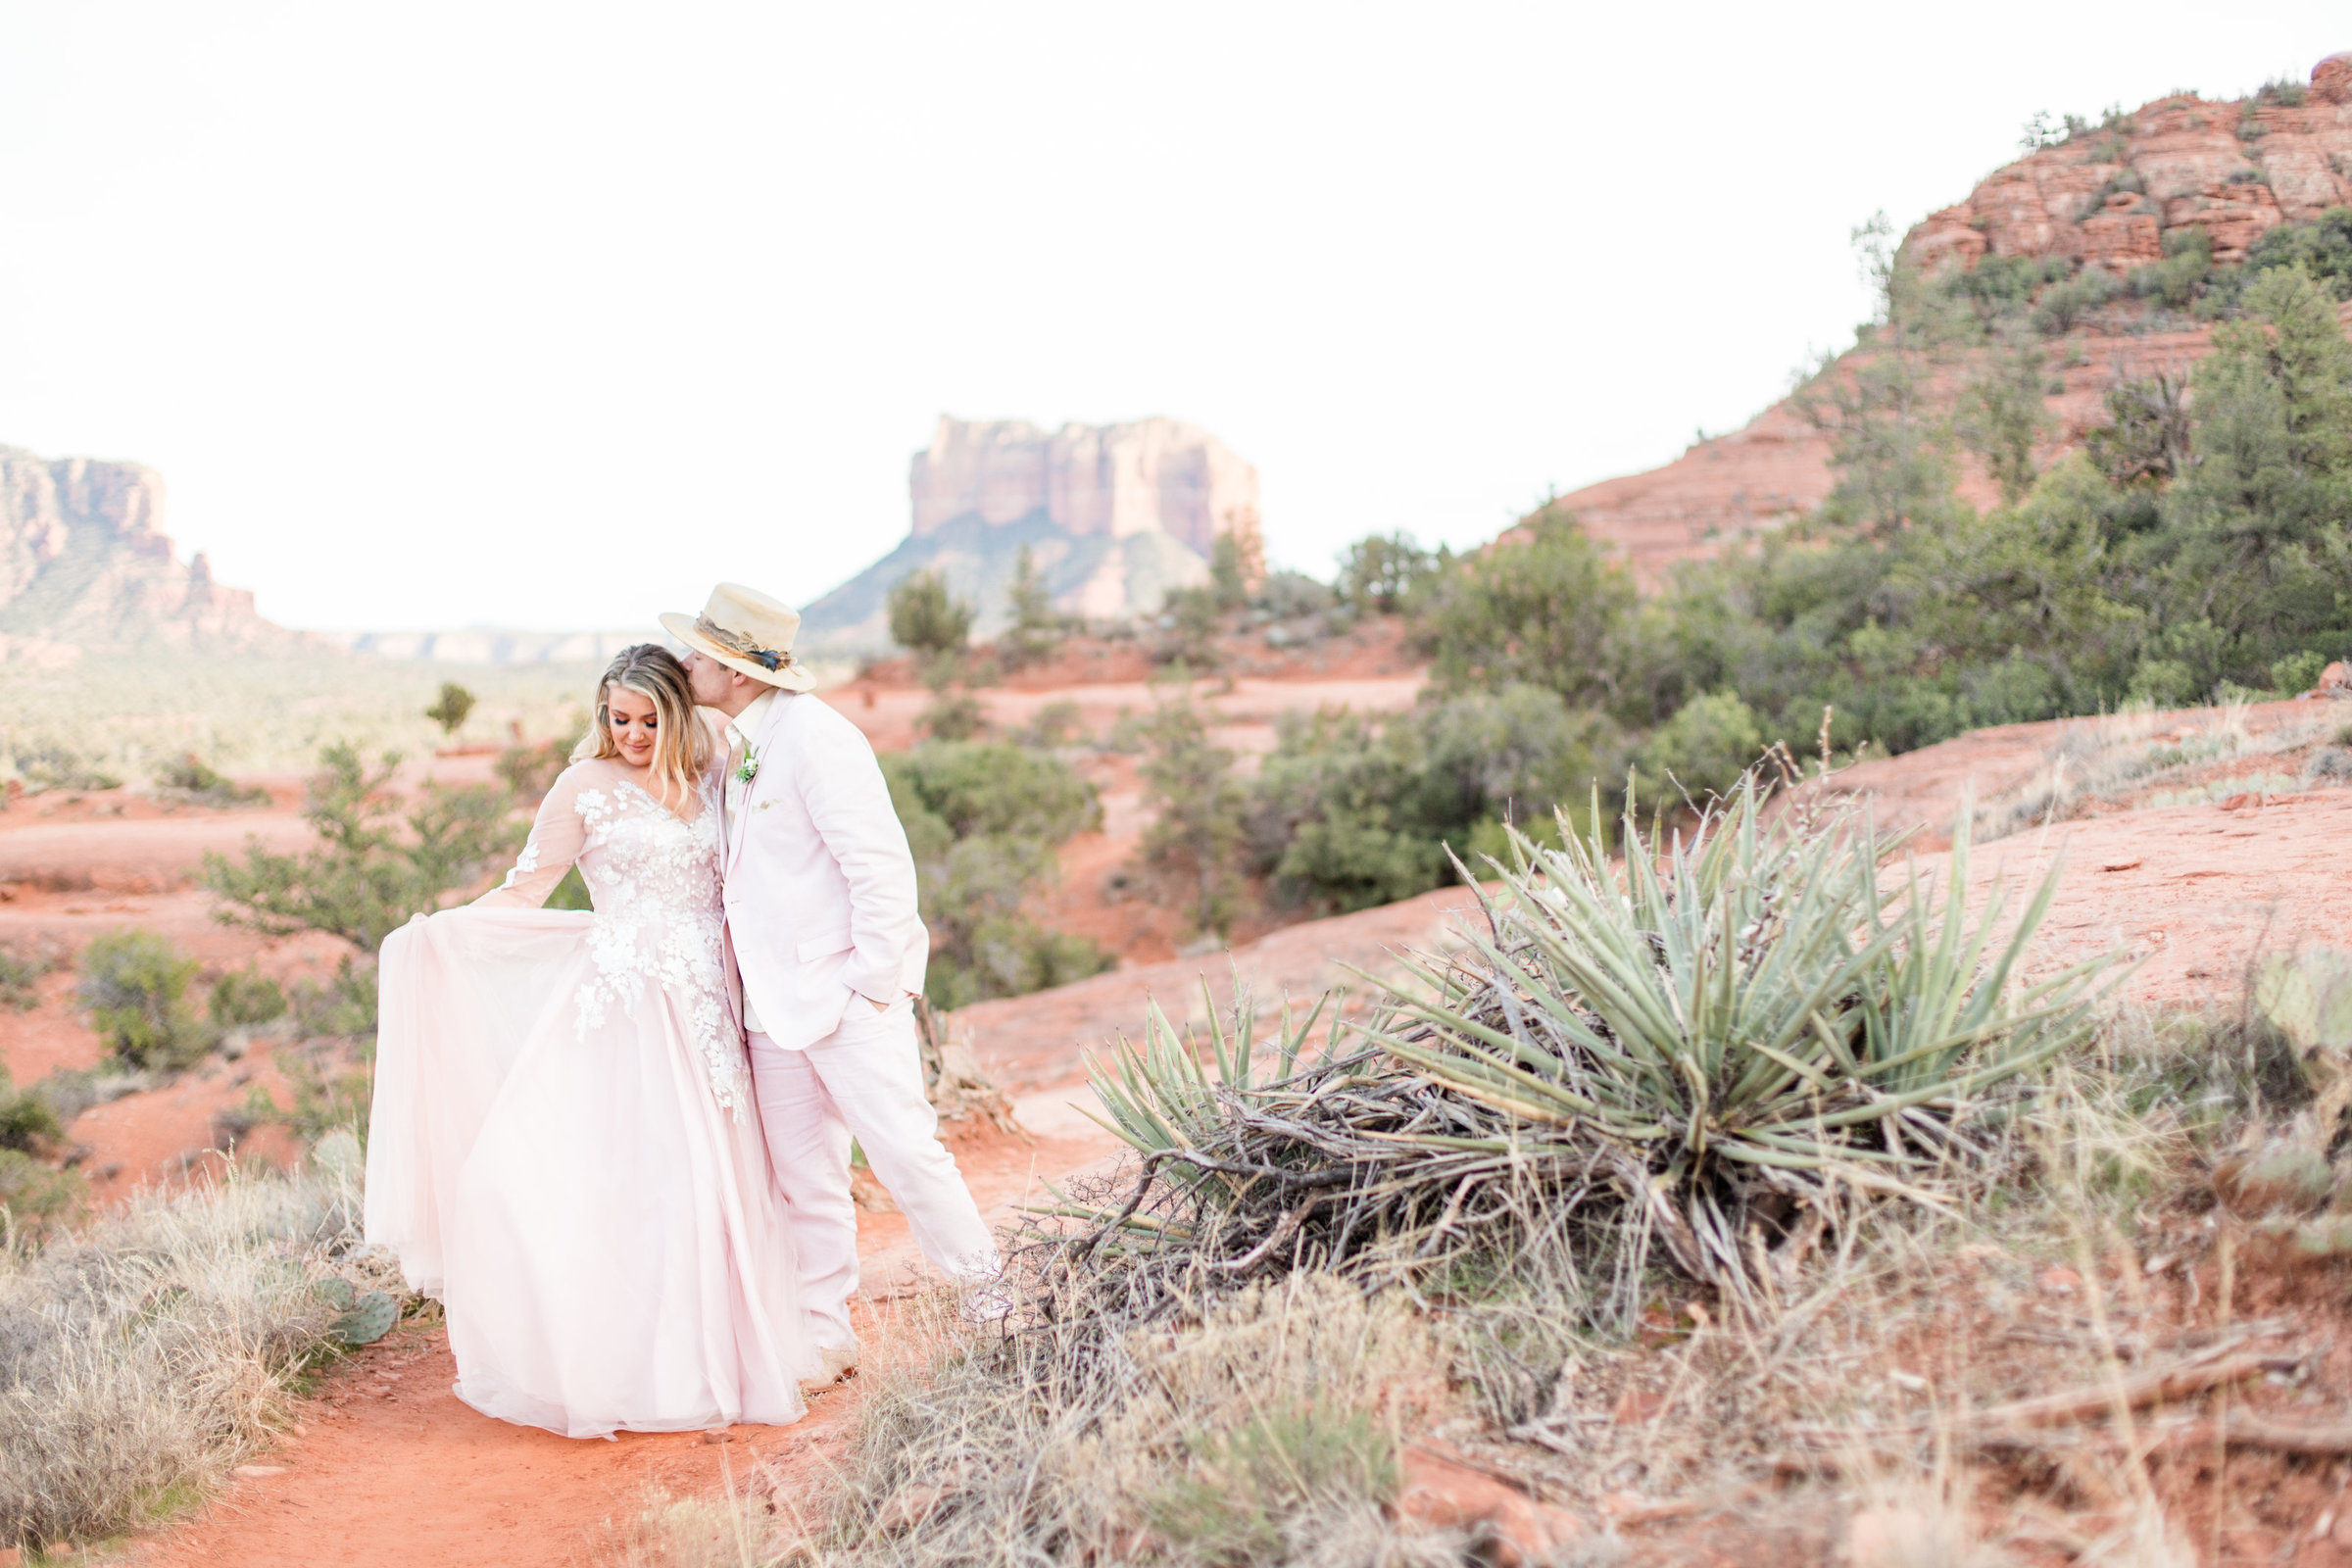 A bride fans her wedding dress during an elopement in Arizona